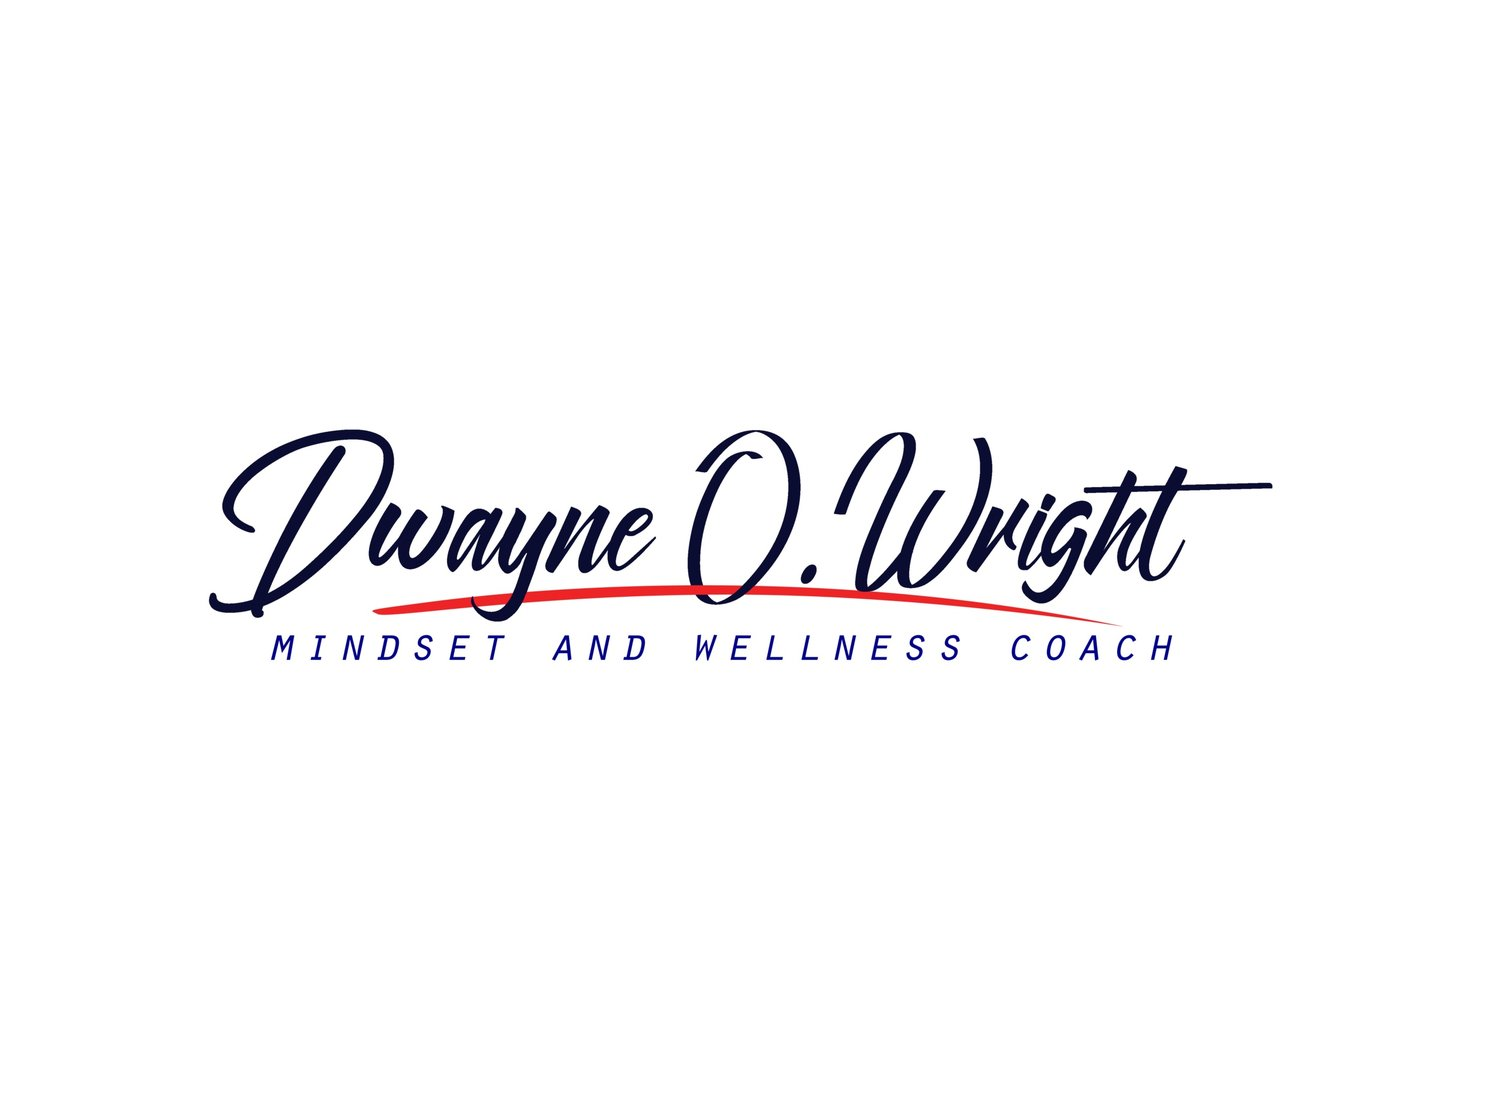 Dwayne O. Wright